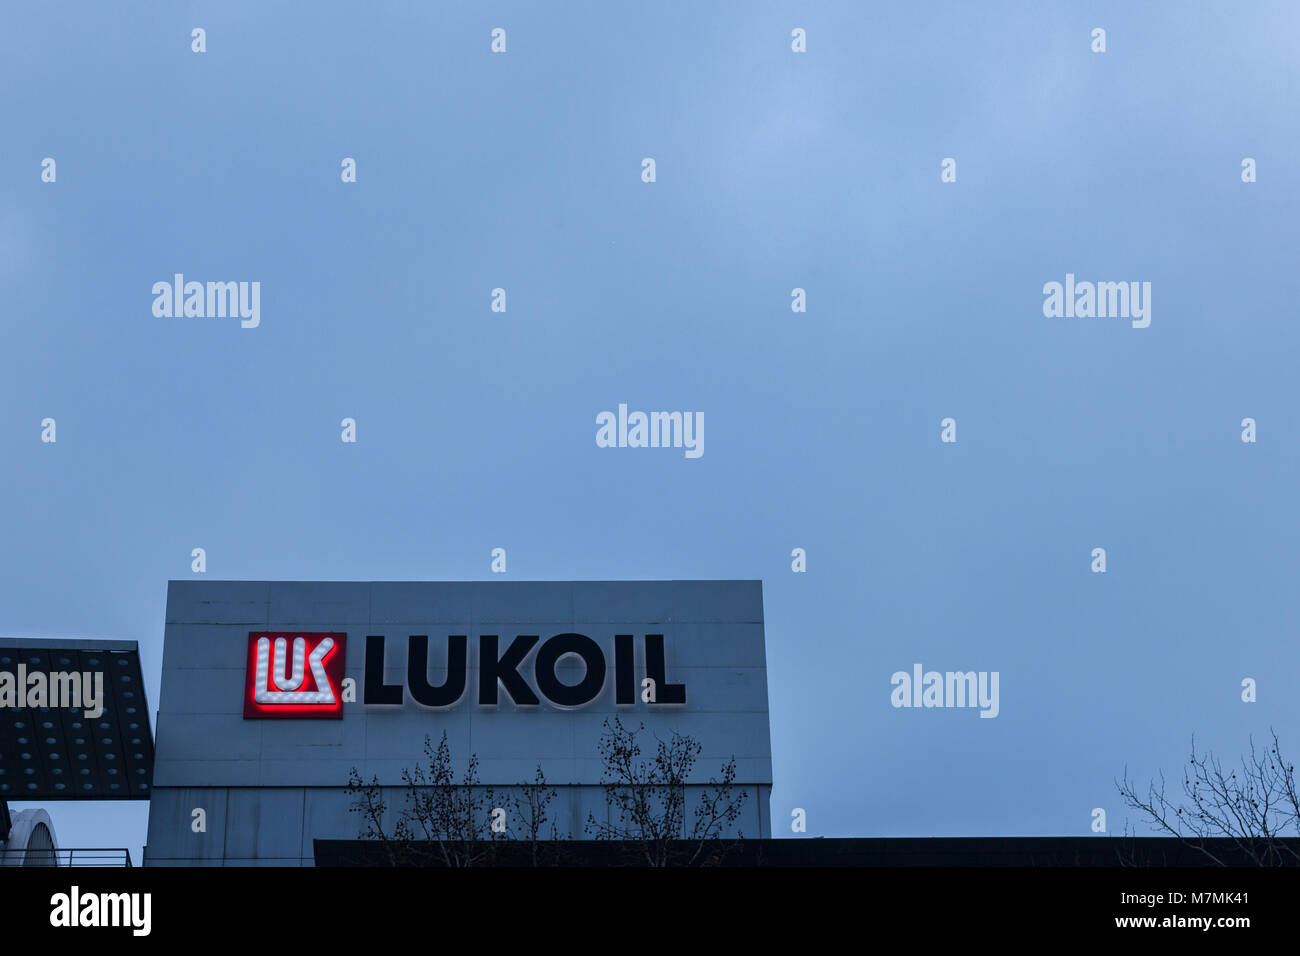 BELGRADE, SERBIA - MARCH 2, 2018: Lukoil logo on their main office for Serbia. Lukoil Corporation is the main Russian - Stock Image